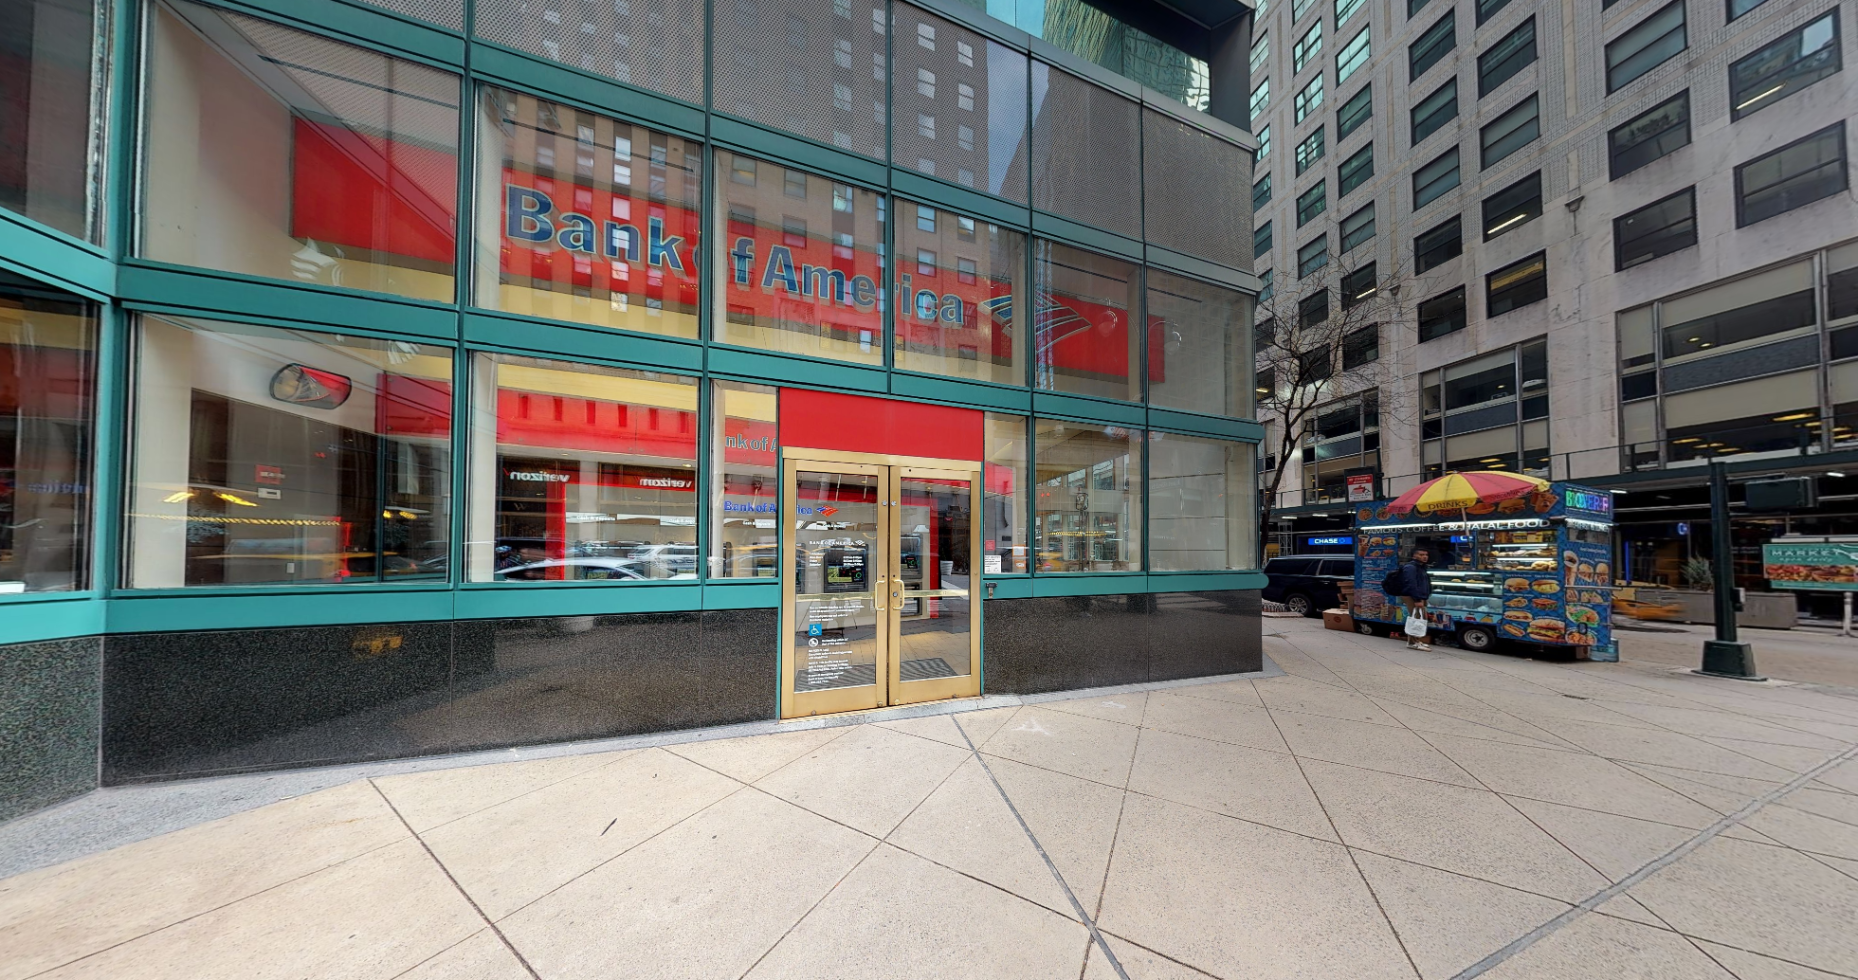 Bank of America financial center with walk-up ATM   425 Lexington Ave Frnt B, New York, NY 10017